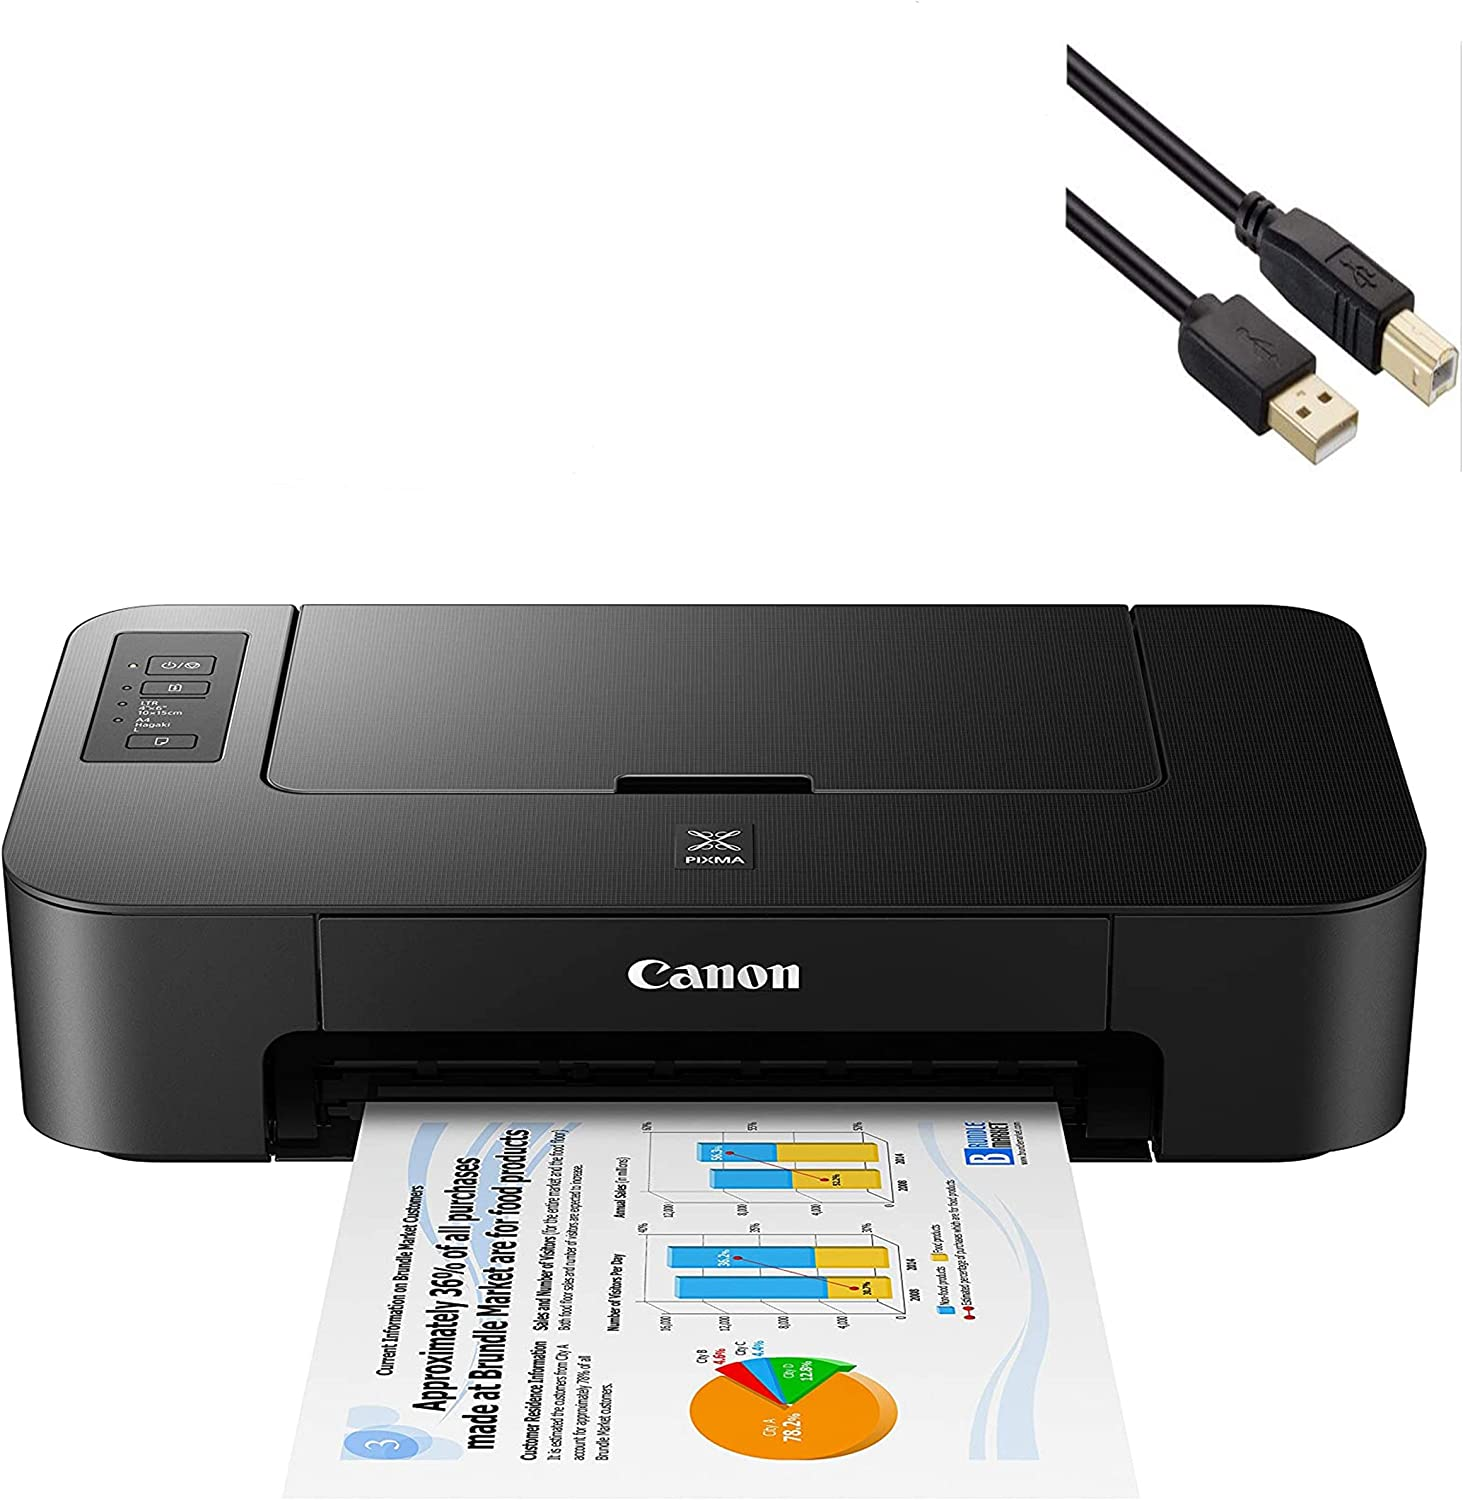 Canon PIXMA TS Series Inkjet Printer - Print Only for Home Business Office Bundle, Up to 4800x1200dpi Color Resolution - 7.7ipm Print Speed, Black - BROAG 4 Feet USB Printer Cable